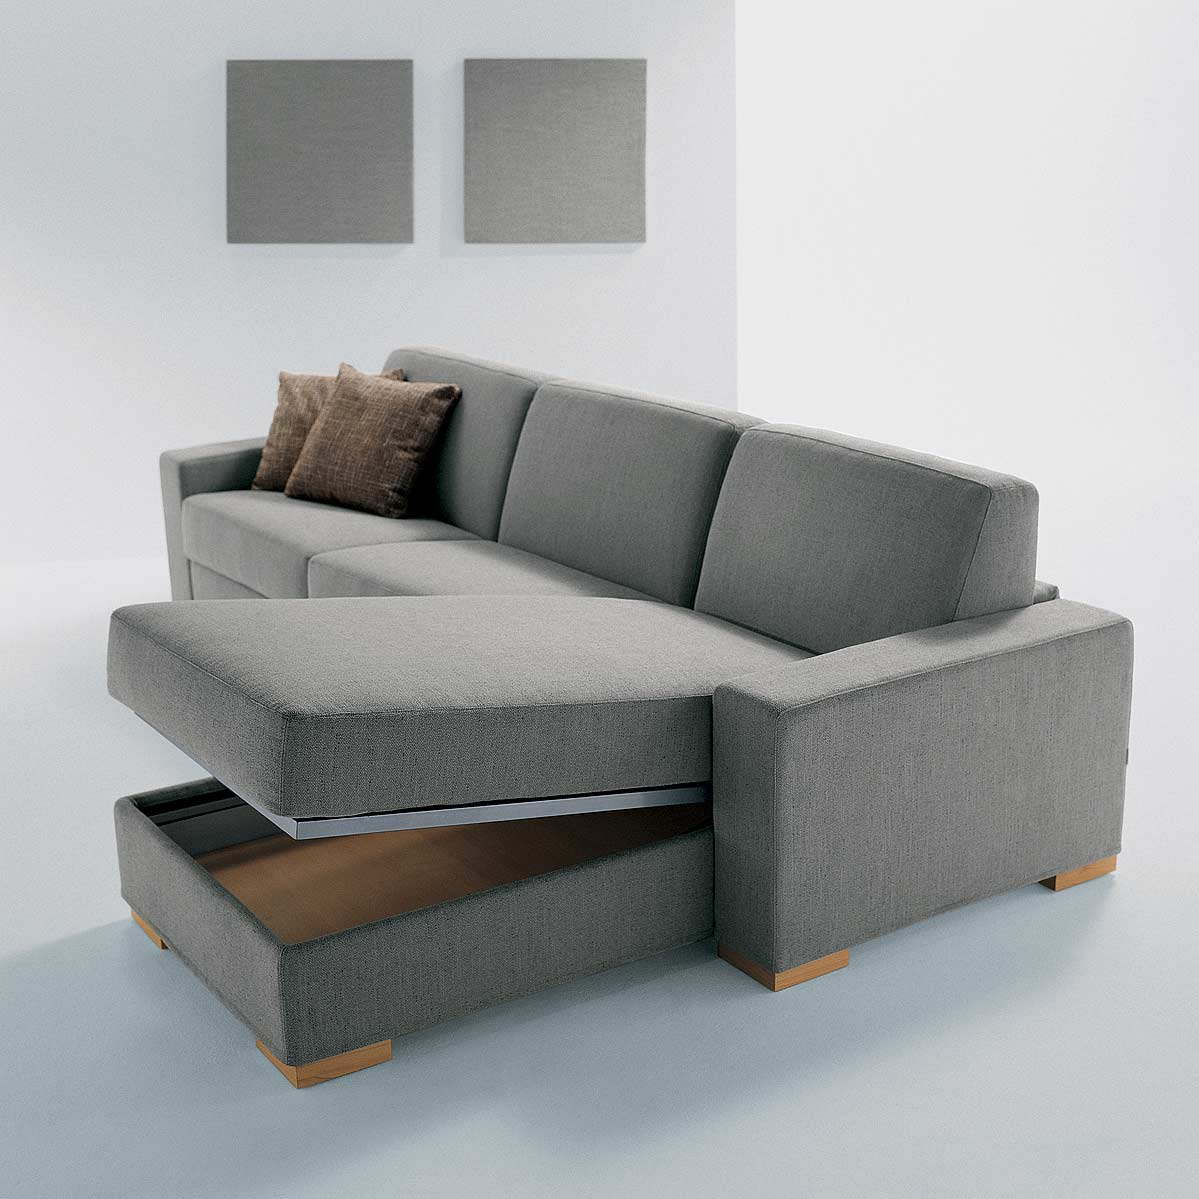 Click clack sofa bed sofa chair bed modern leather for Sofa cama modernos